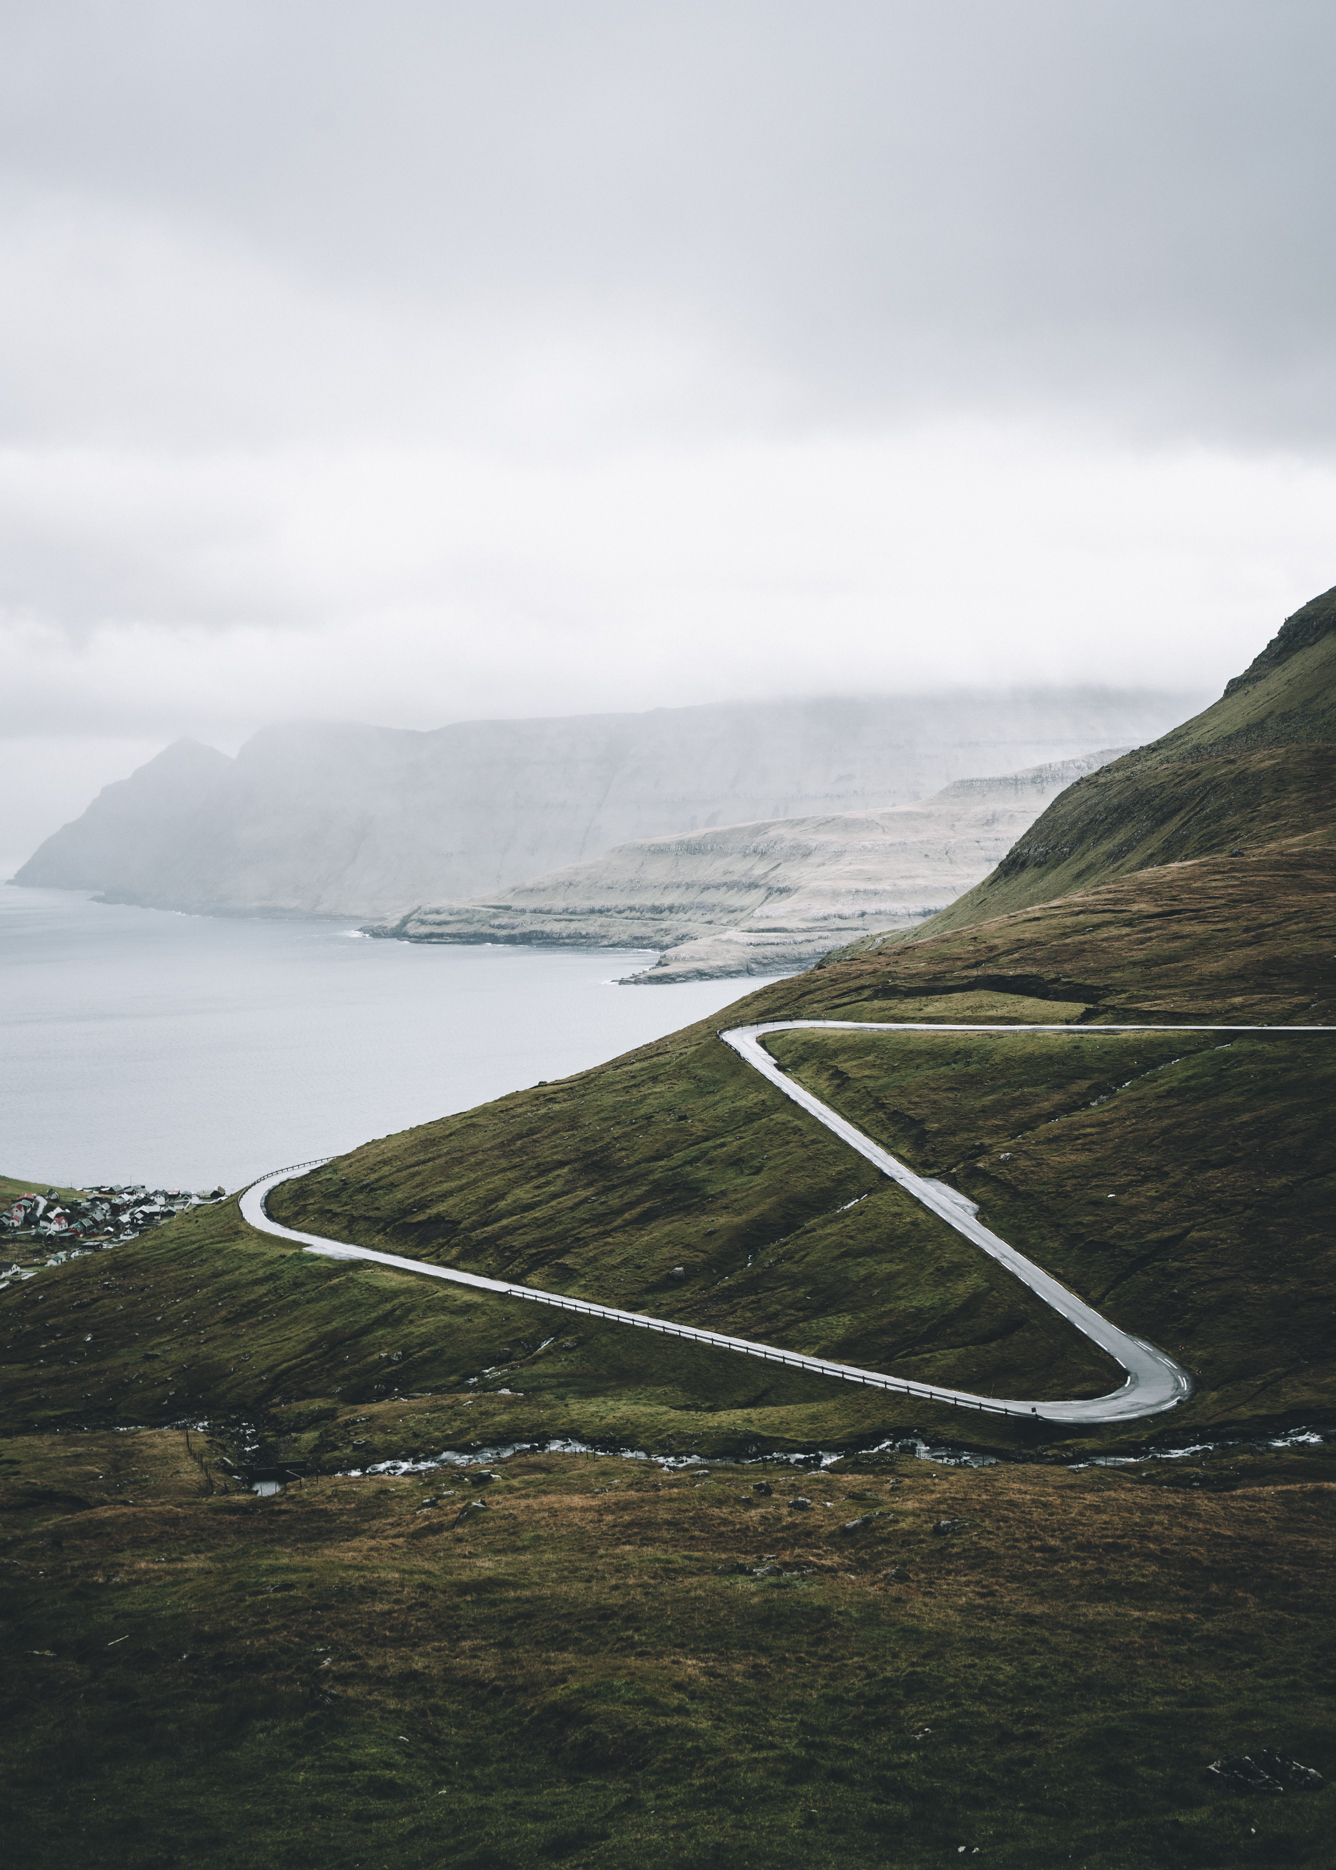 faroe-islands-59.jpg